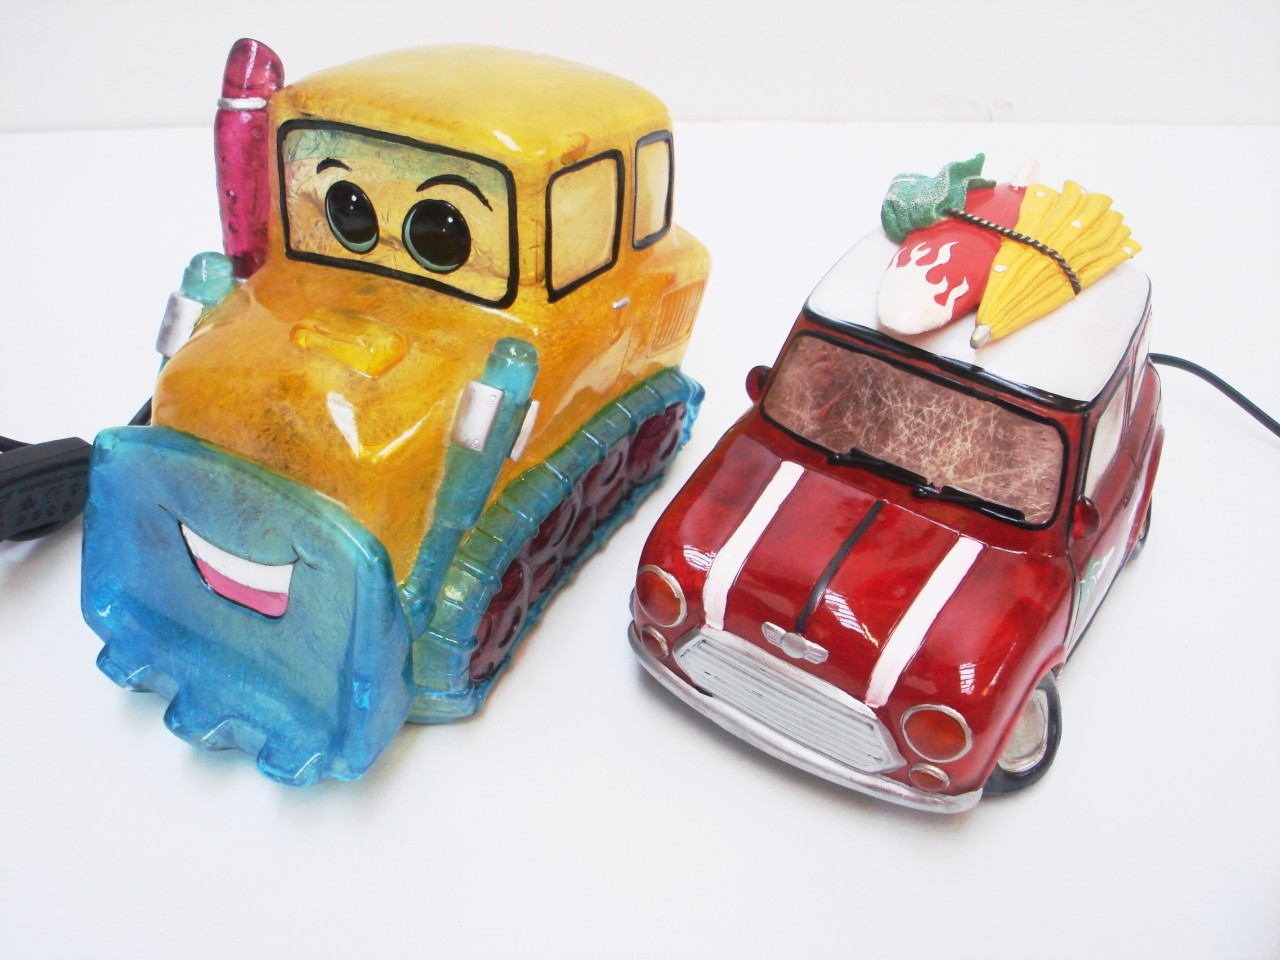 Childrens Bedside Lights Novelty Kids Bedside Night Light Table Lamp Jcb Digger Or